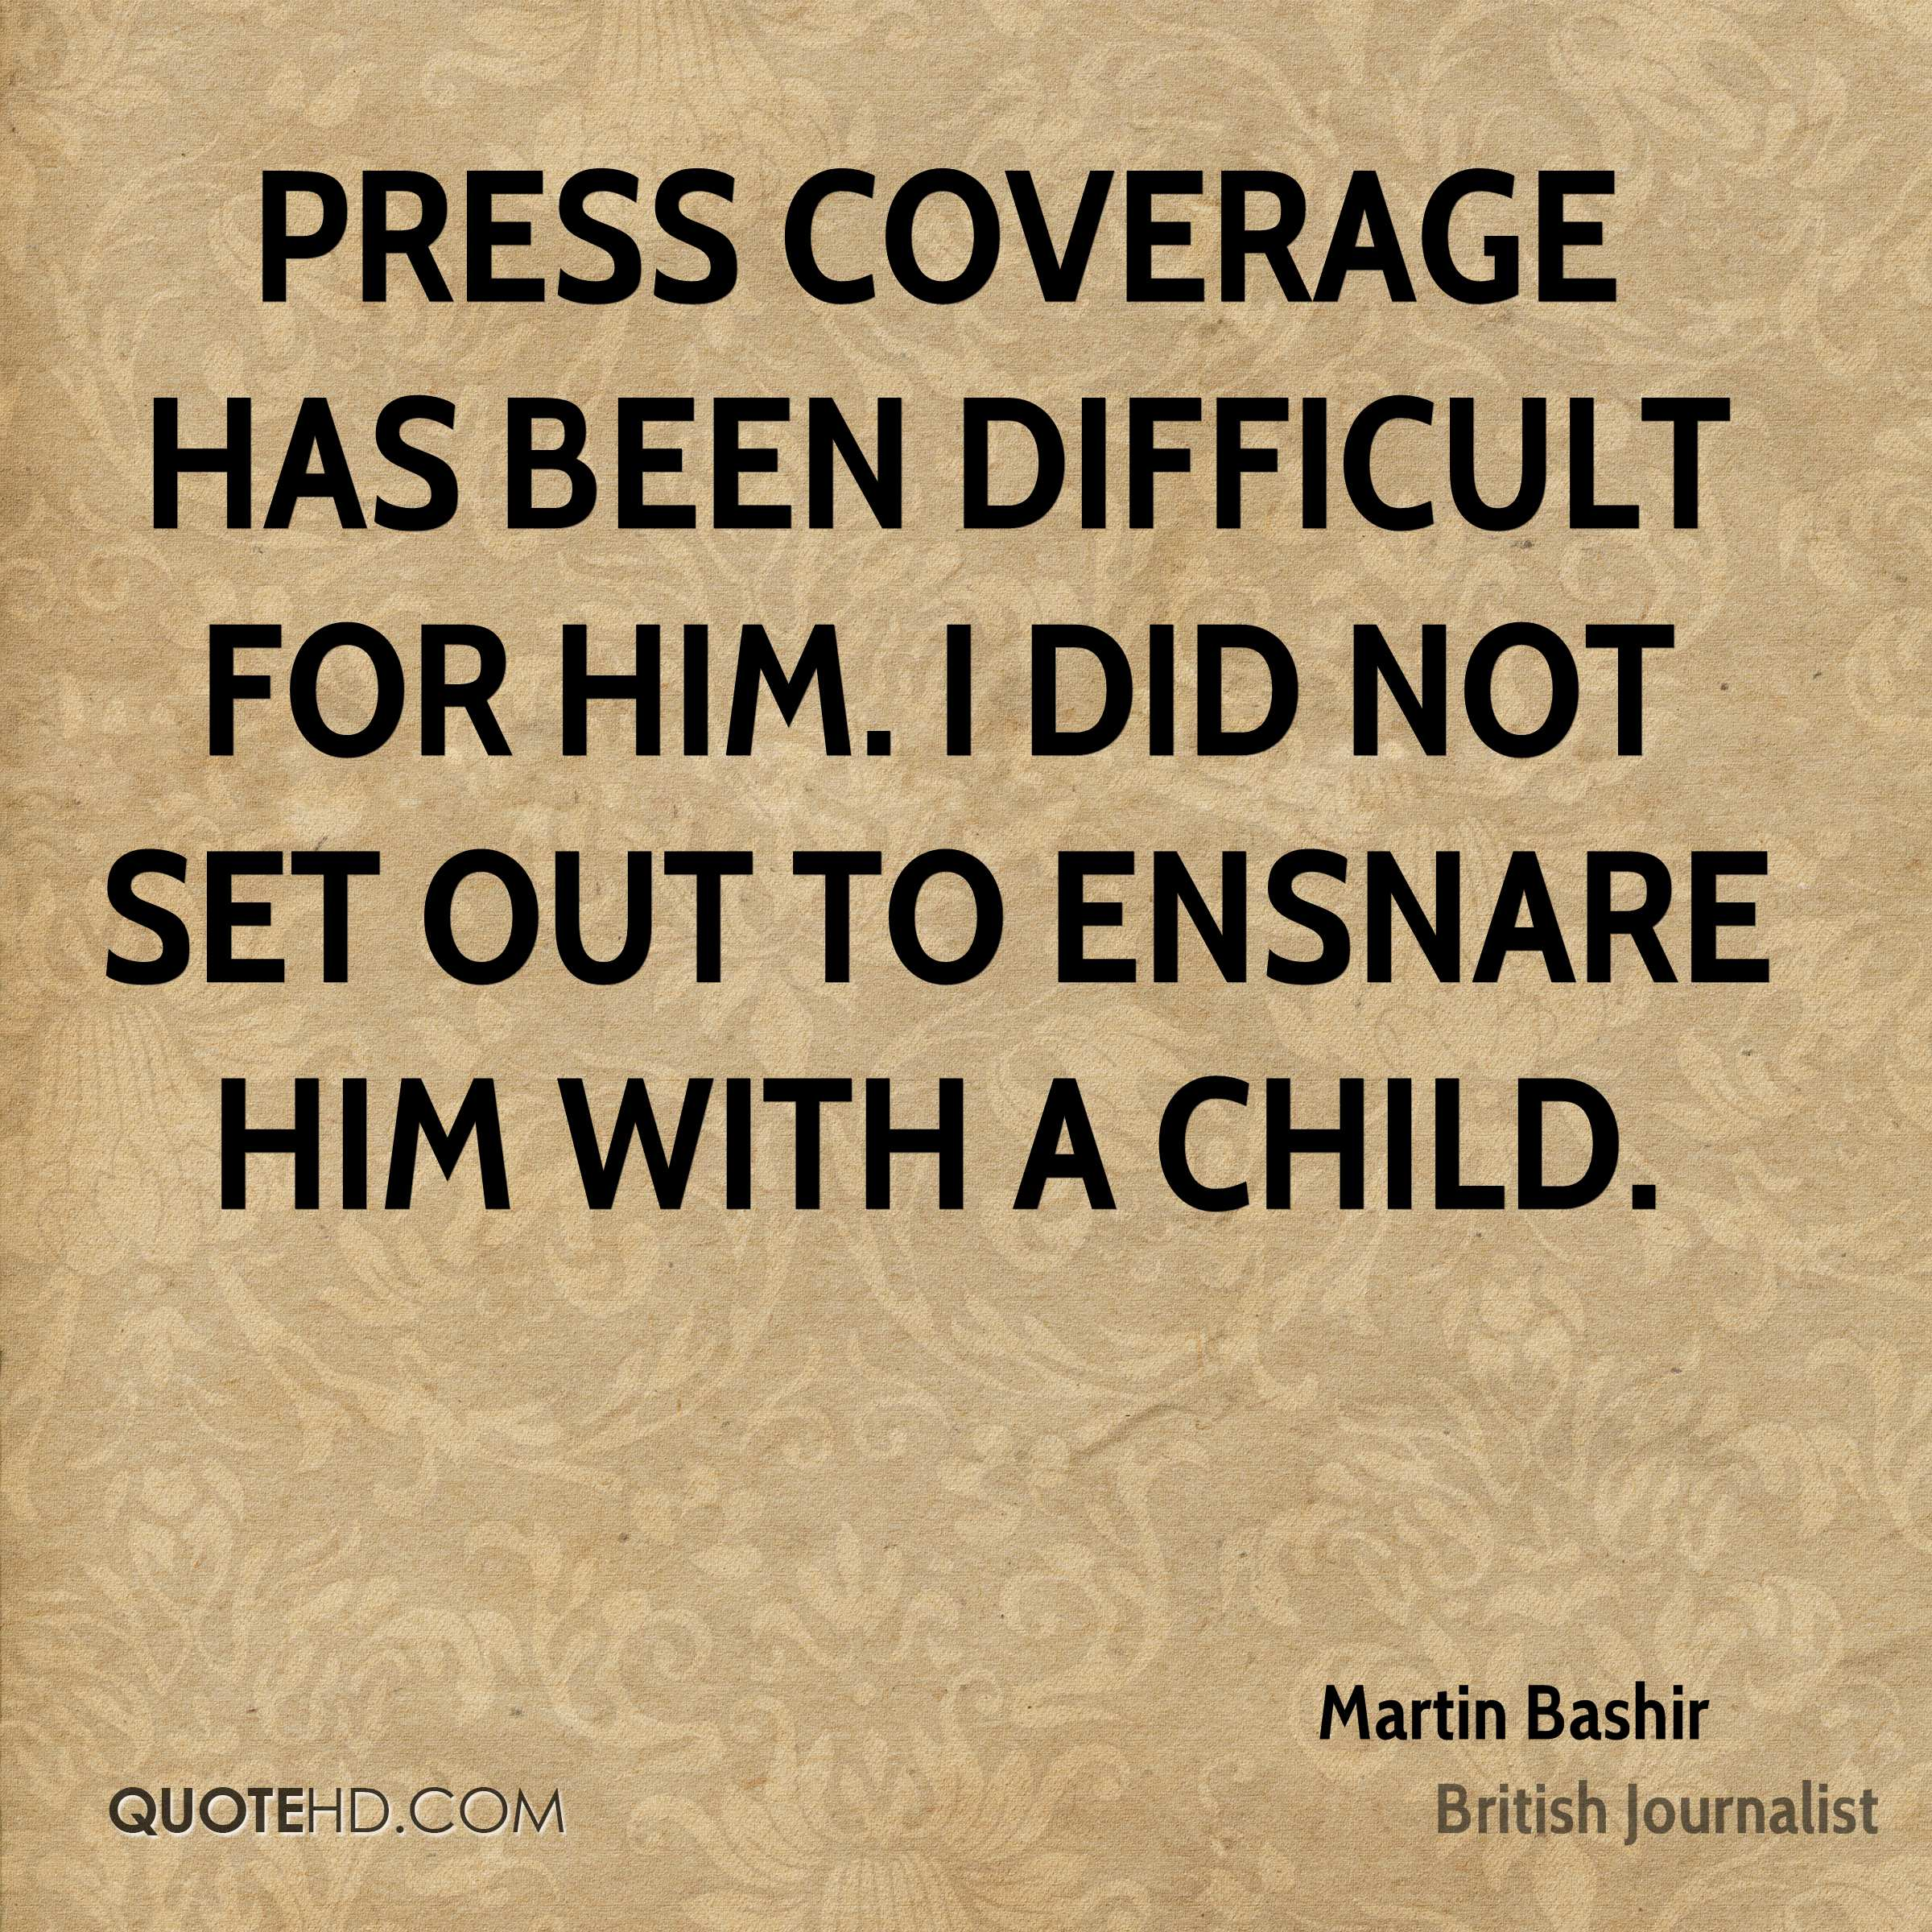 Press coverage has been difficult for him. I did not set out to ensnare him with a child.